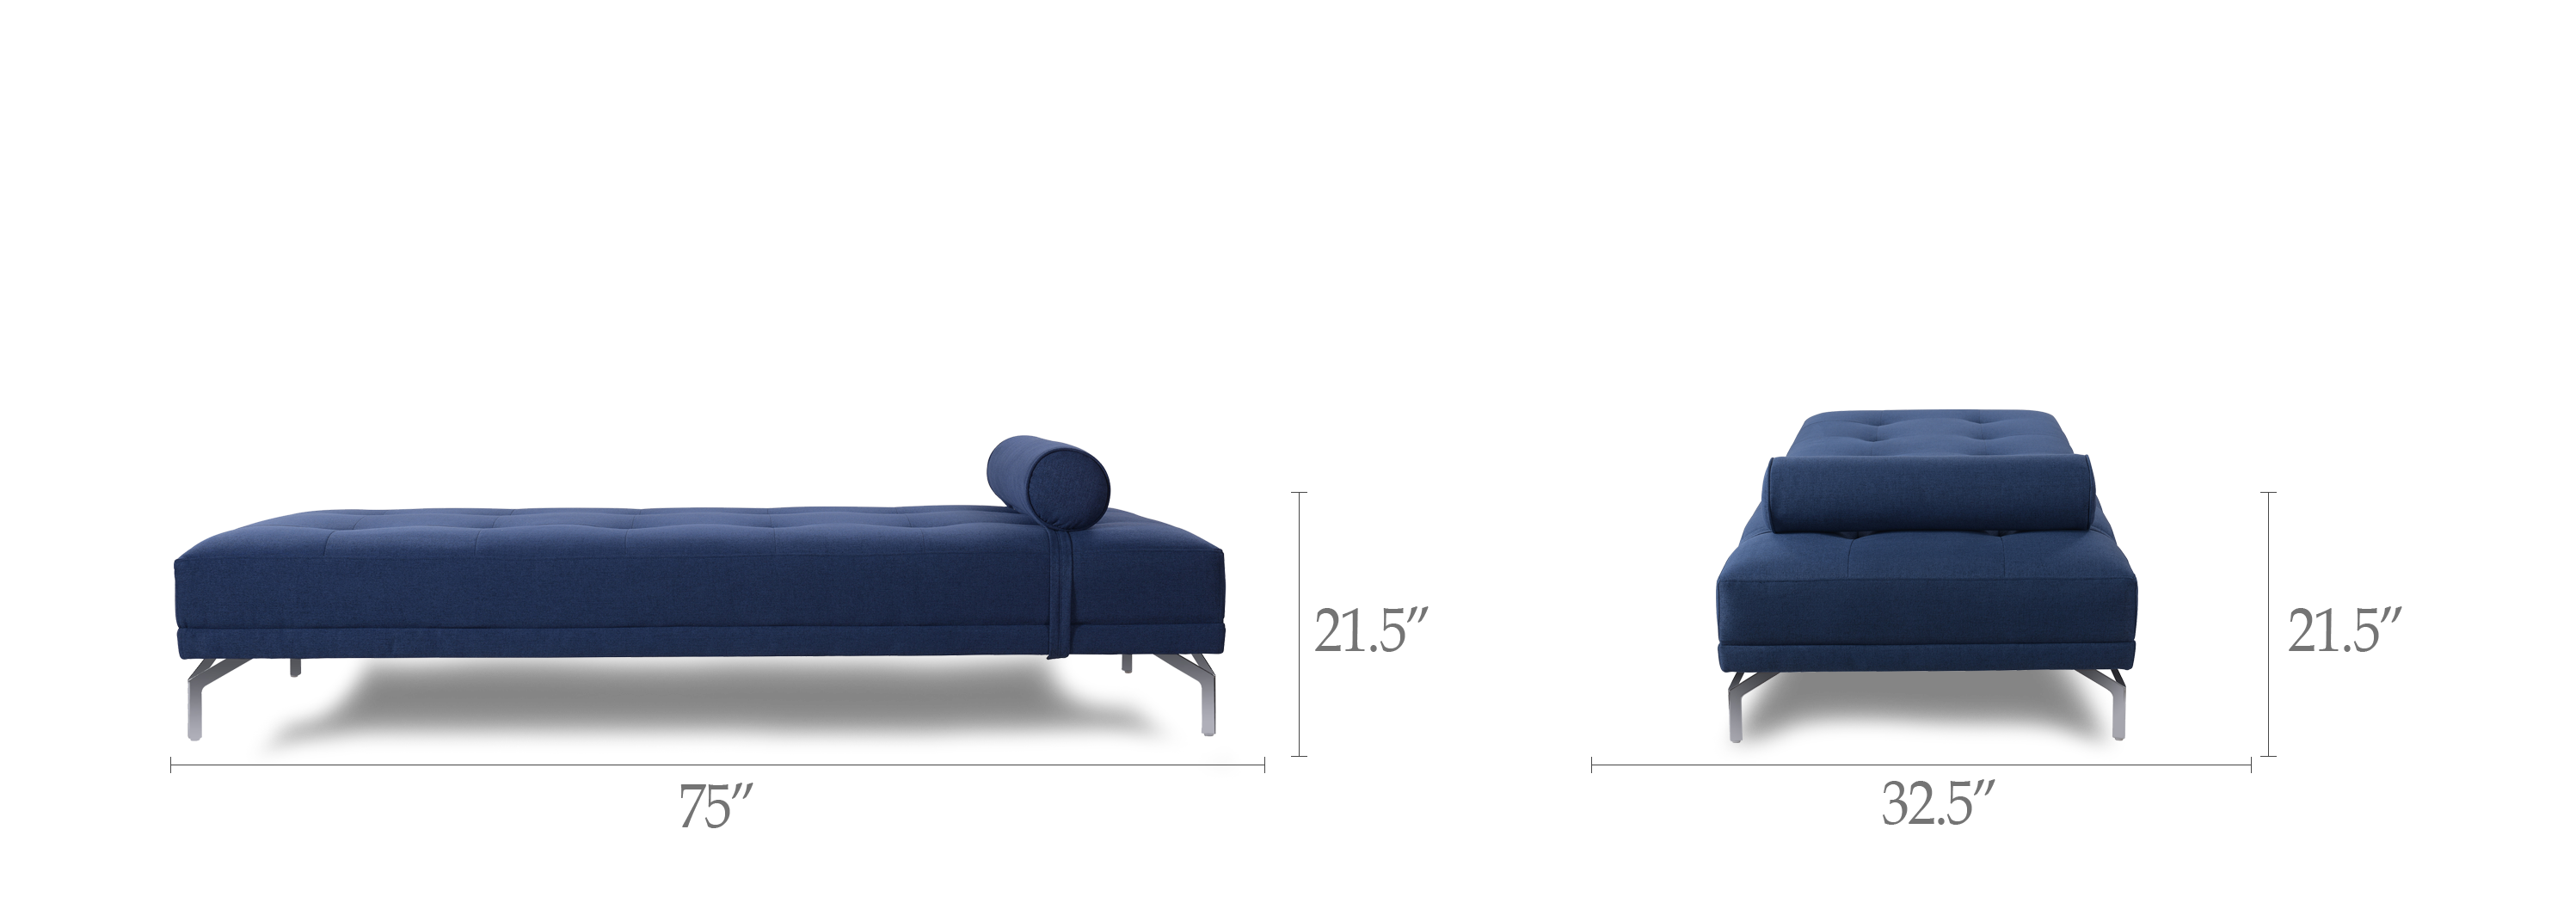 Abigail Sofa Daybed